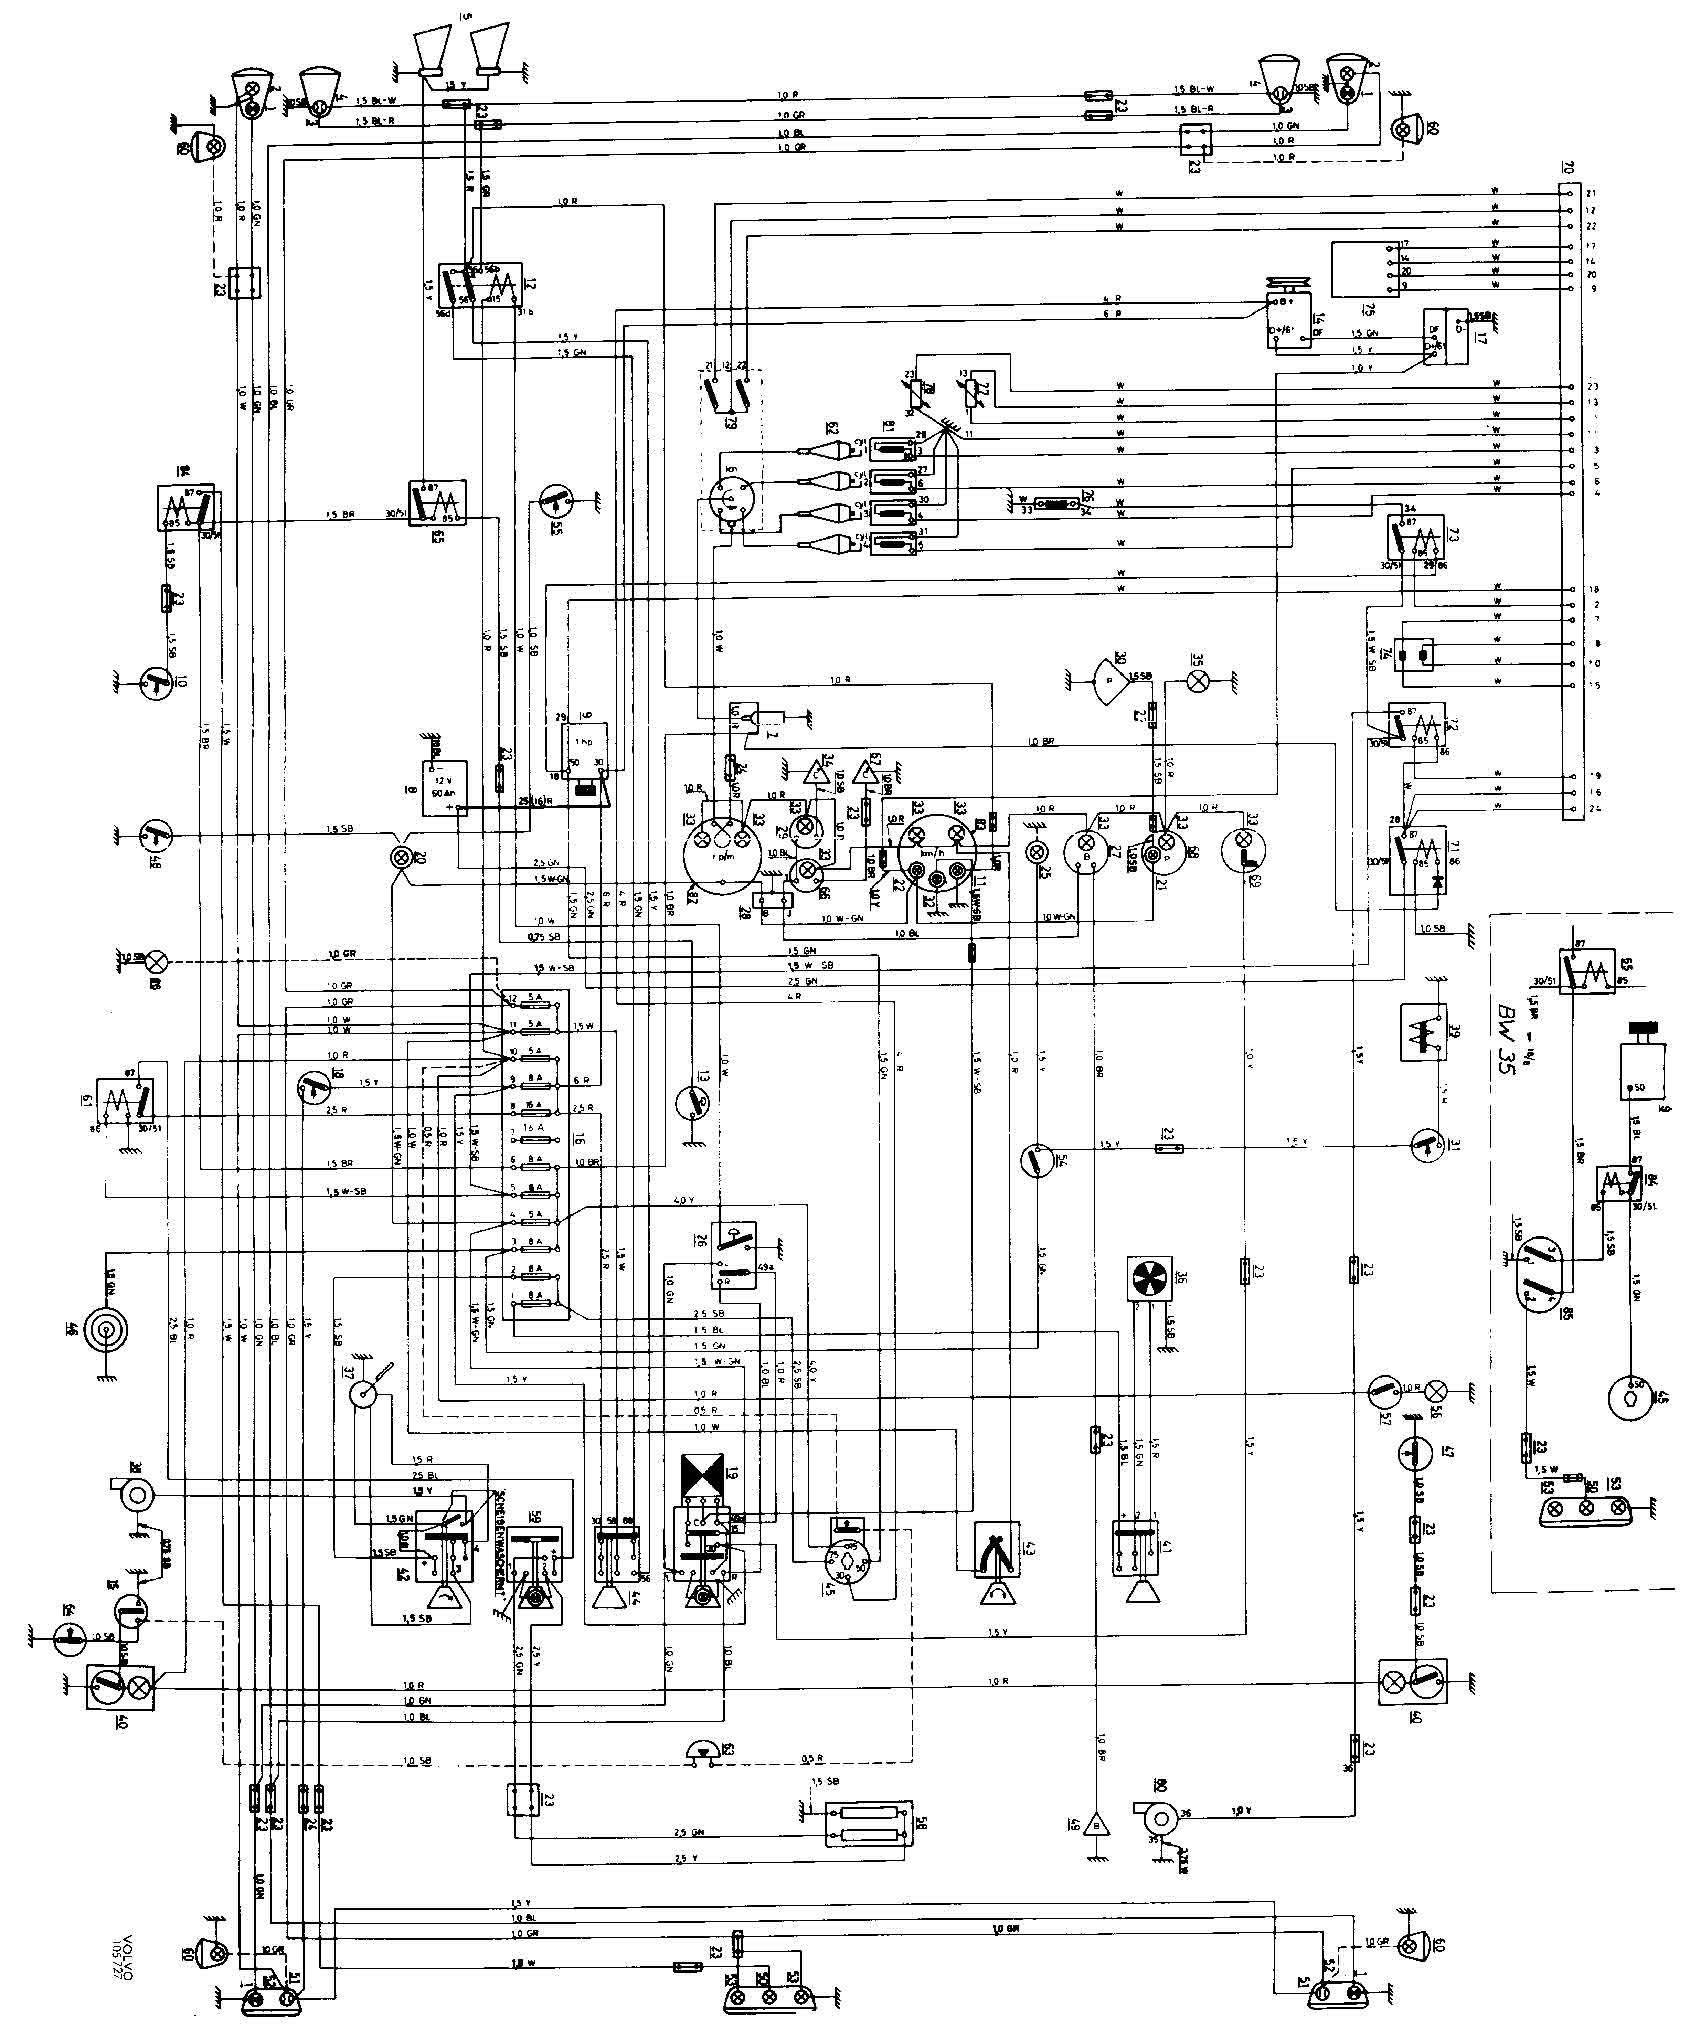 2001 Volvo S70 Wiring Diagram Archive Of Automotive 850 Stereo V70 Schematics Rh Thyl Co Uk